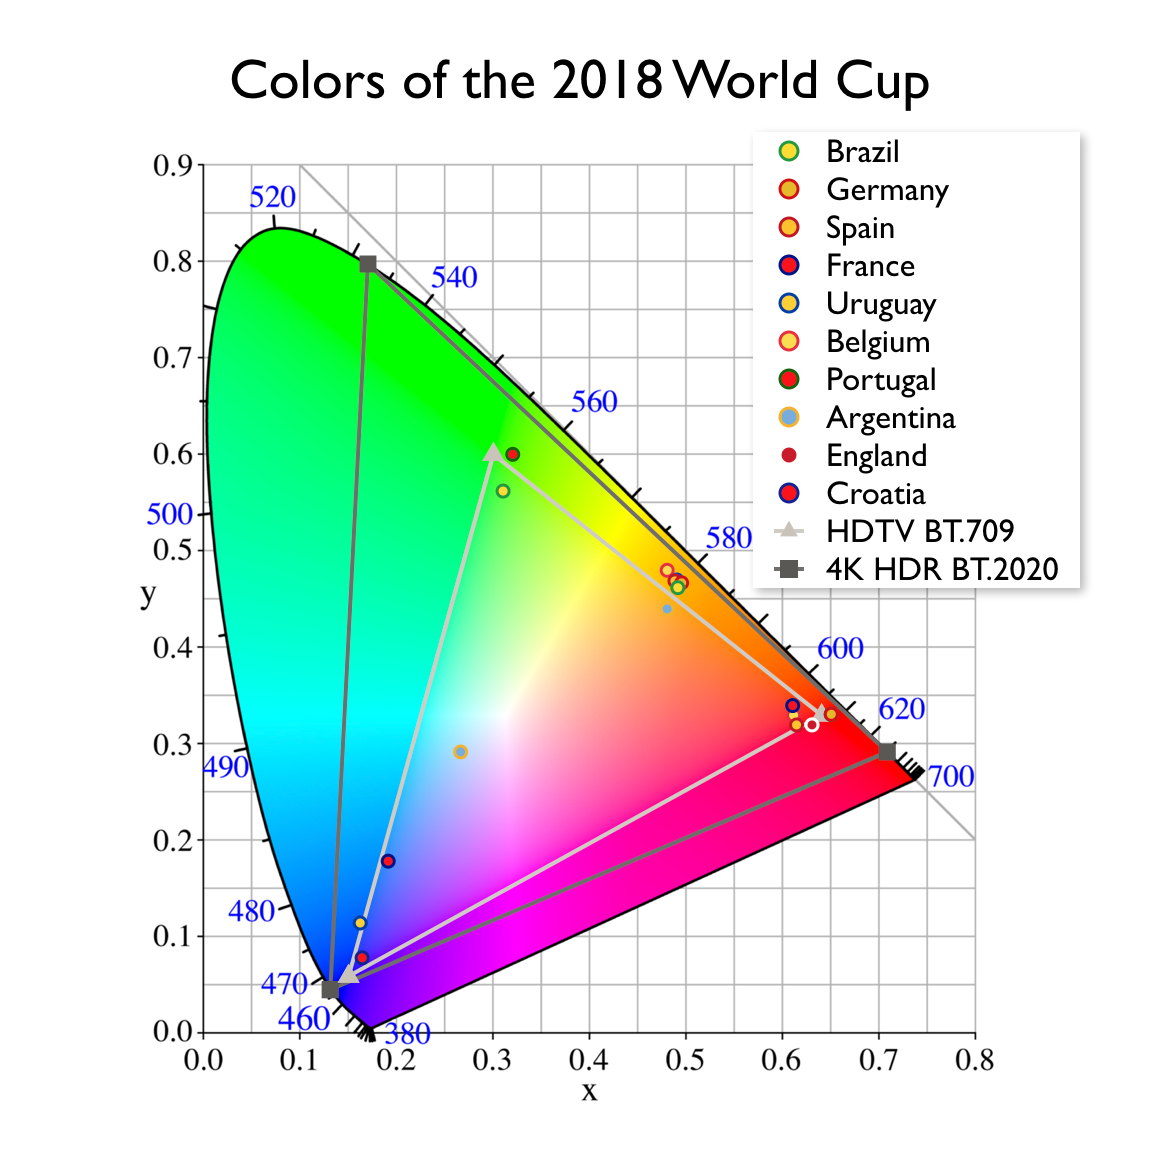 World Cup 2018 Top 10 Teams Color Gamut